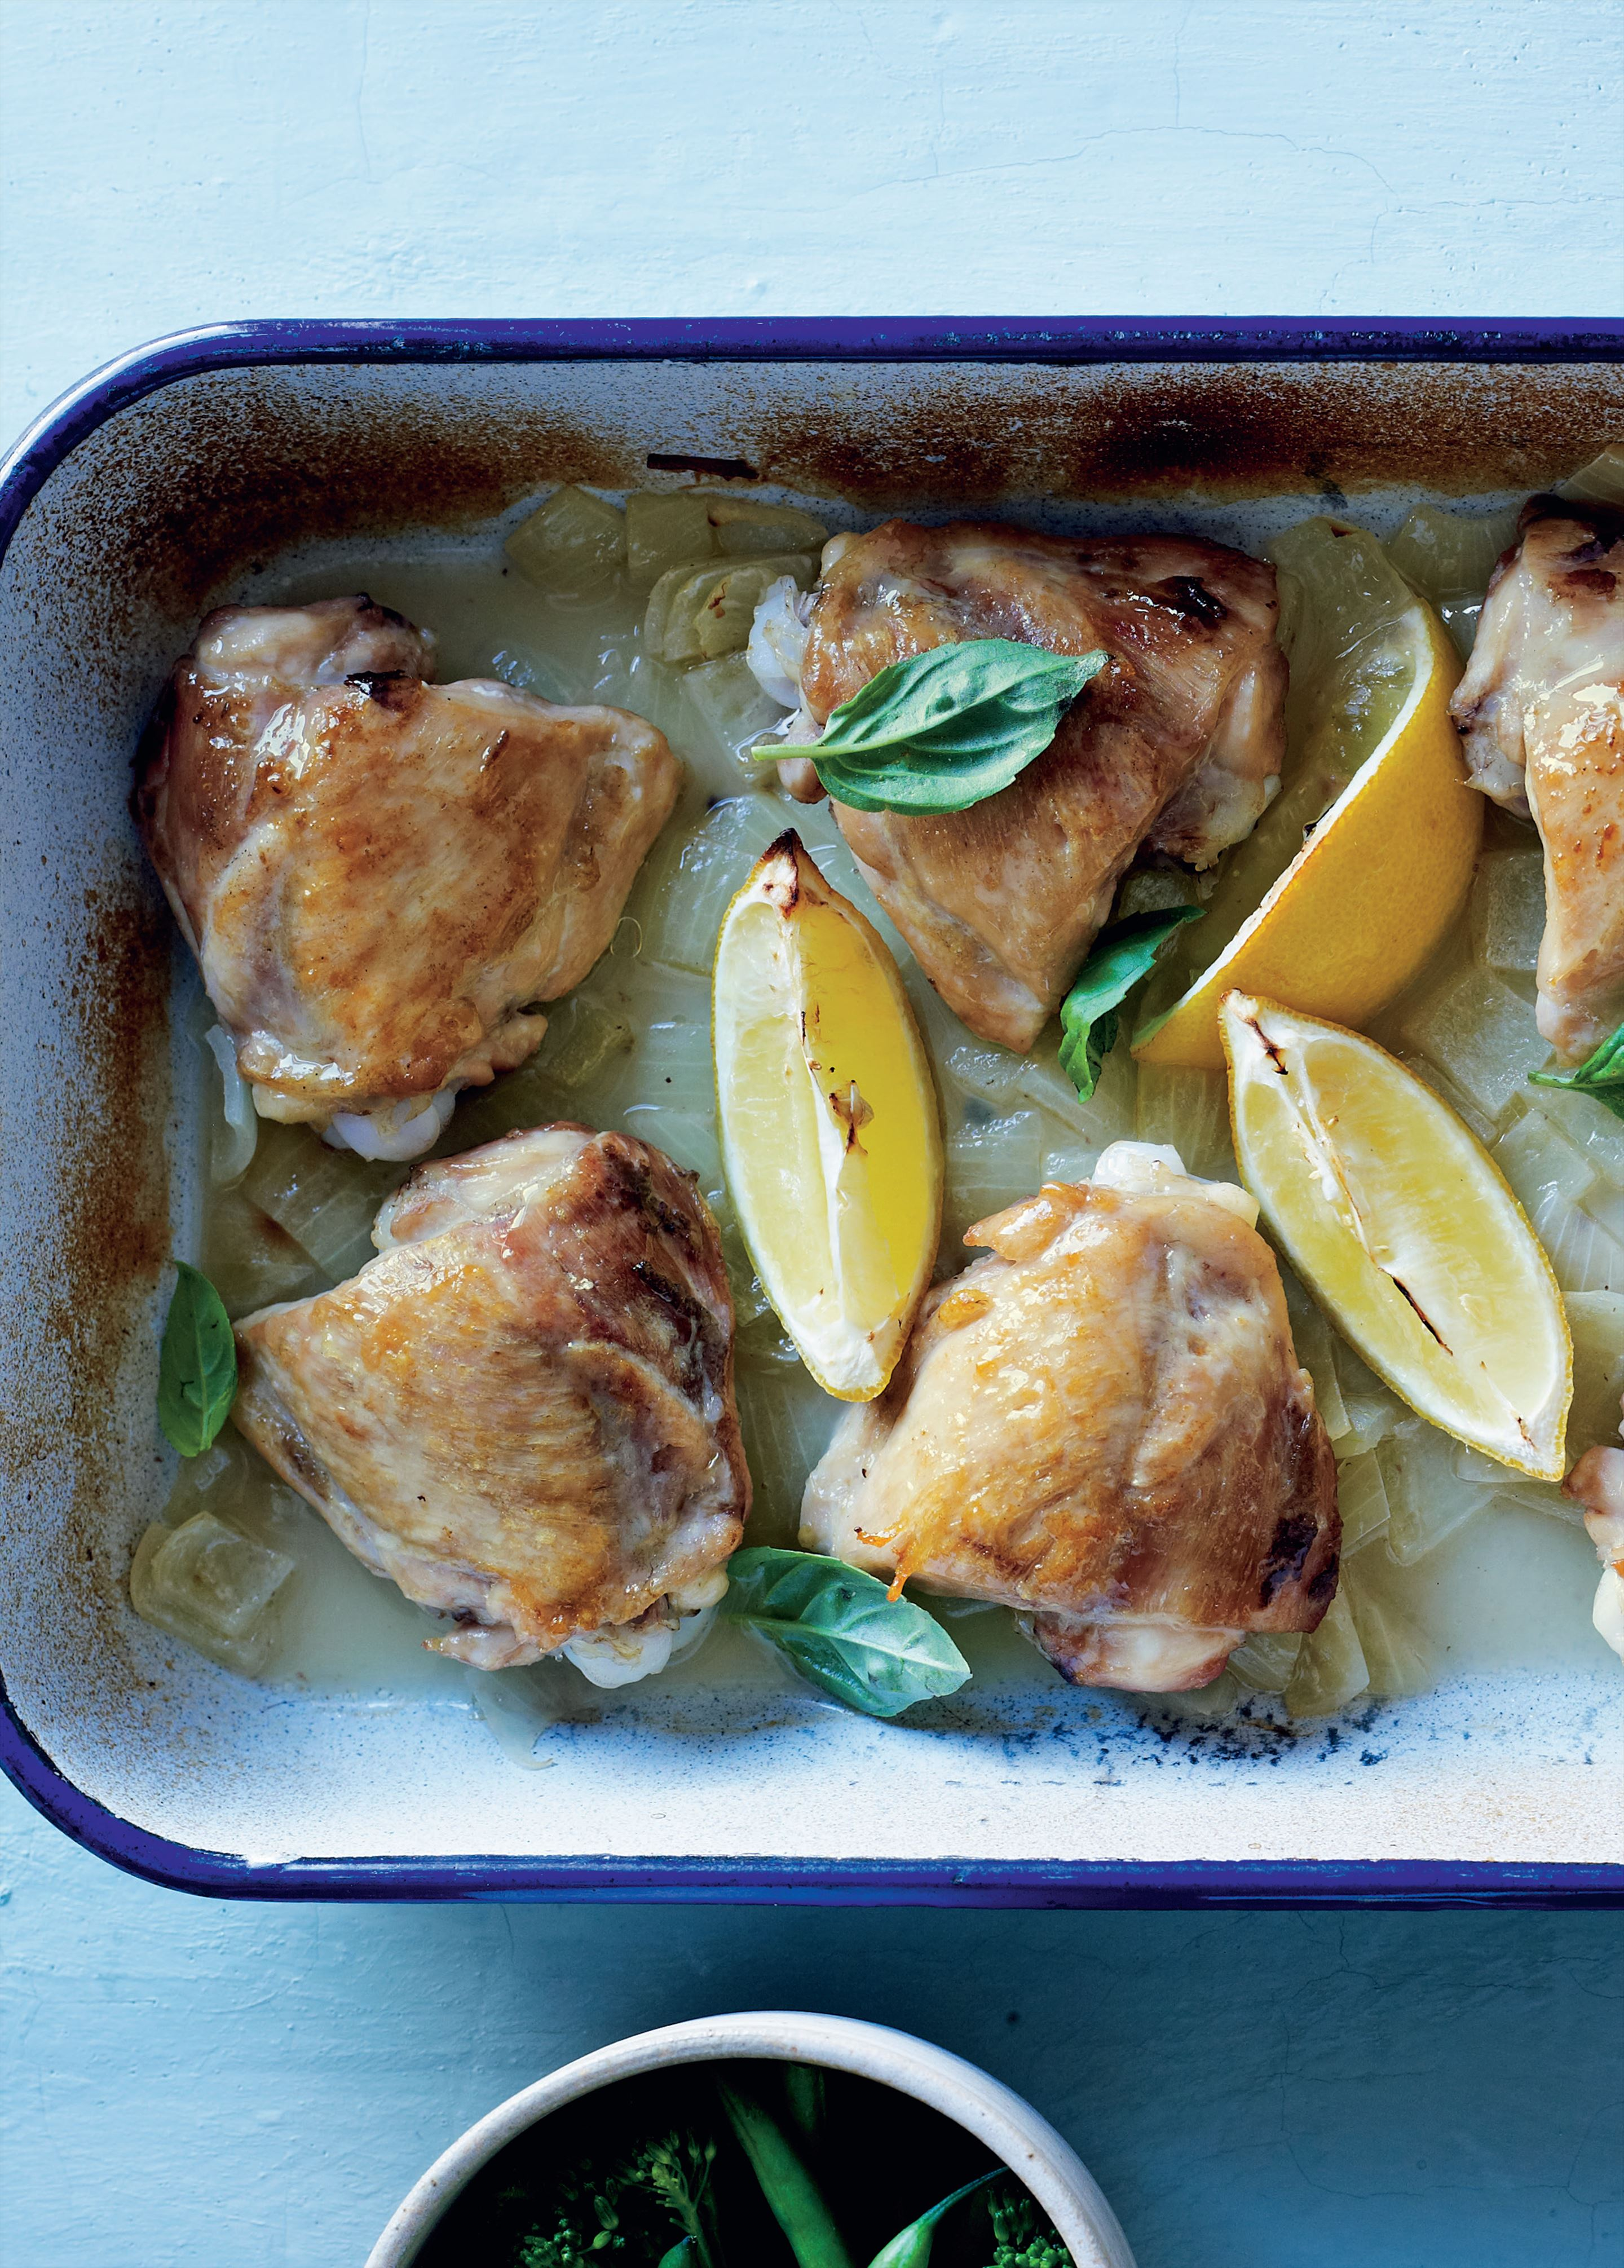 Chicken with lemon and basil